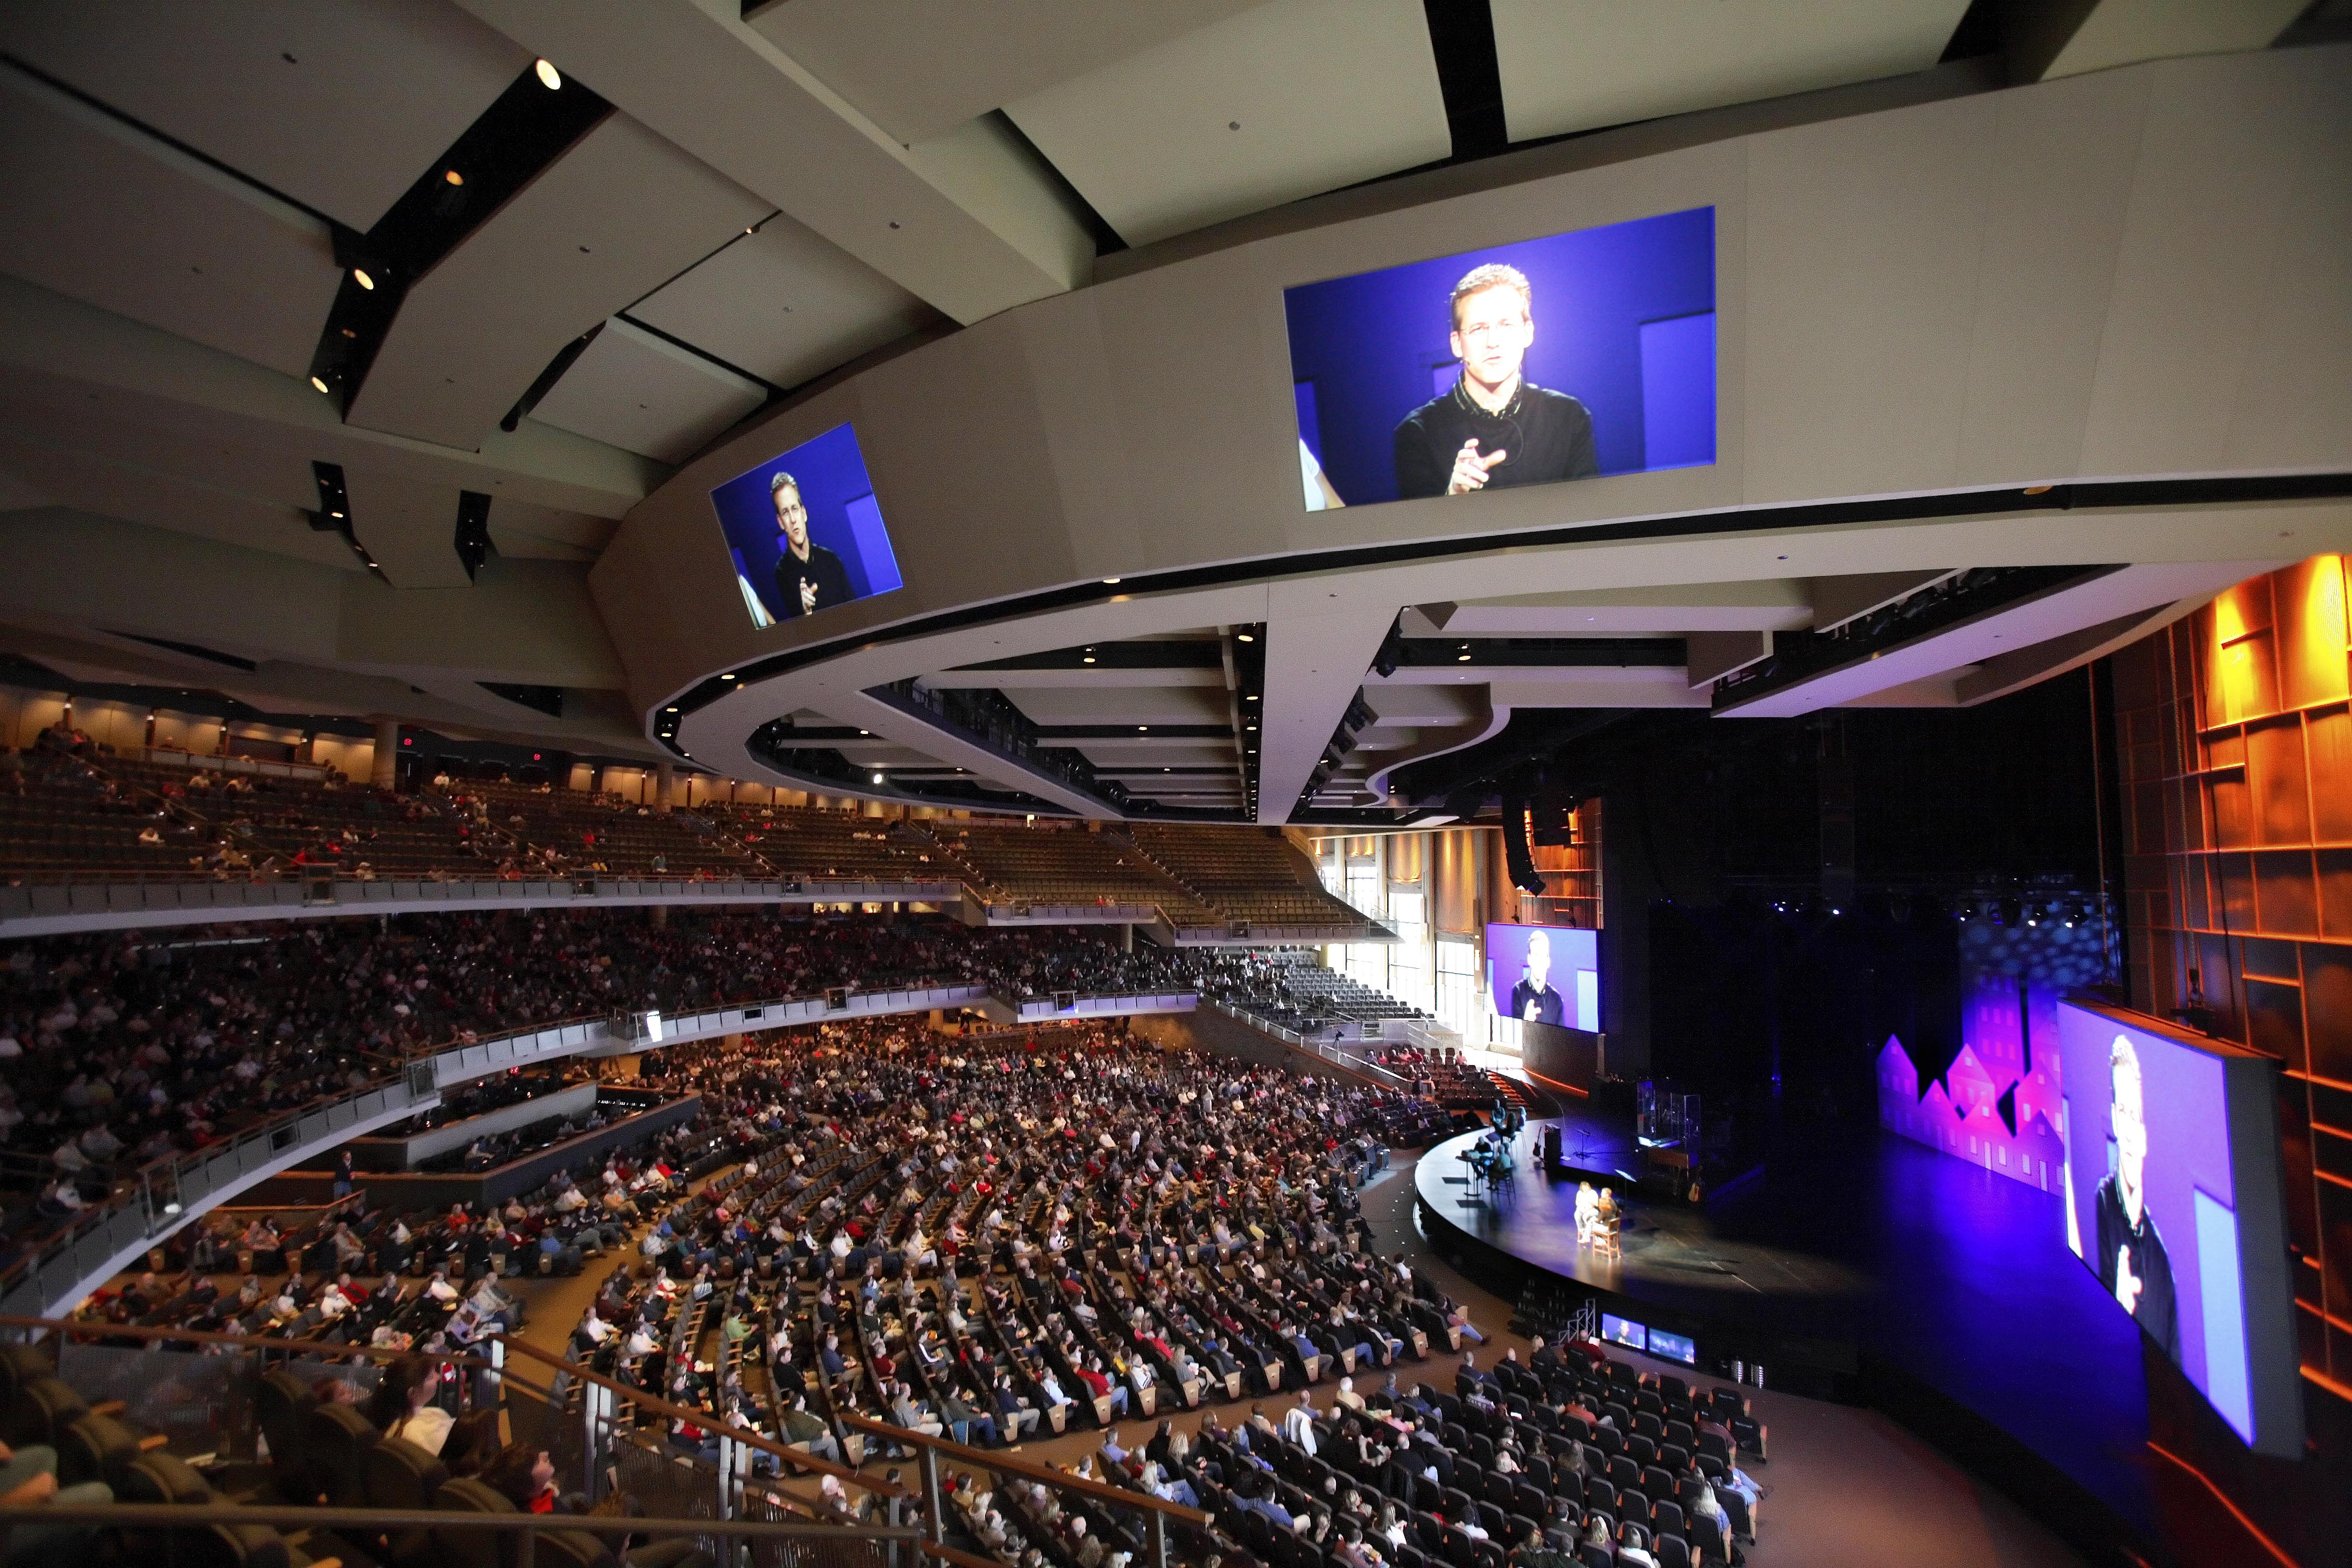 Pastor Gene Appel's image can be seen projected on several televisions in the 7,000-seat Willow Creek Community church during a Sunday service in South Barrington, Illinois, November 20, 2005. REUTERS/John Gress